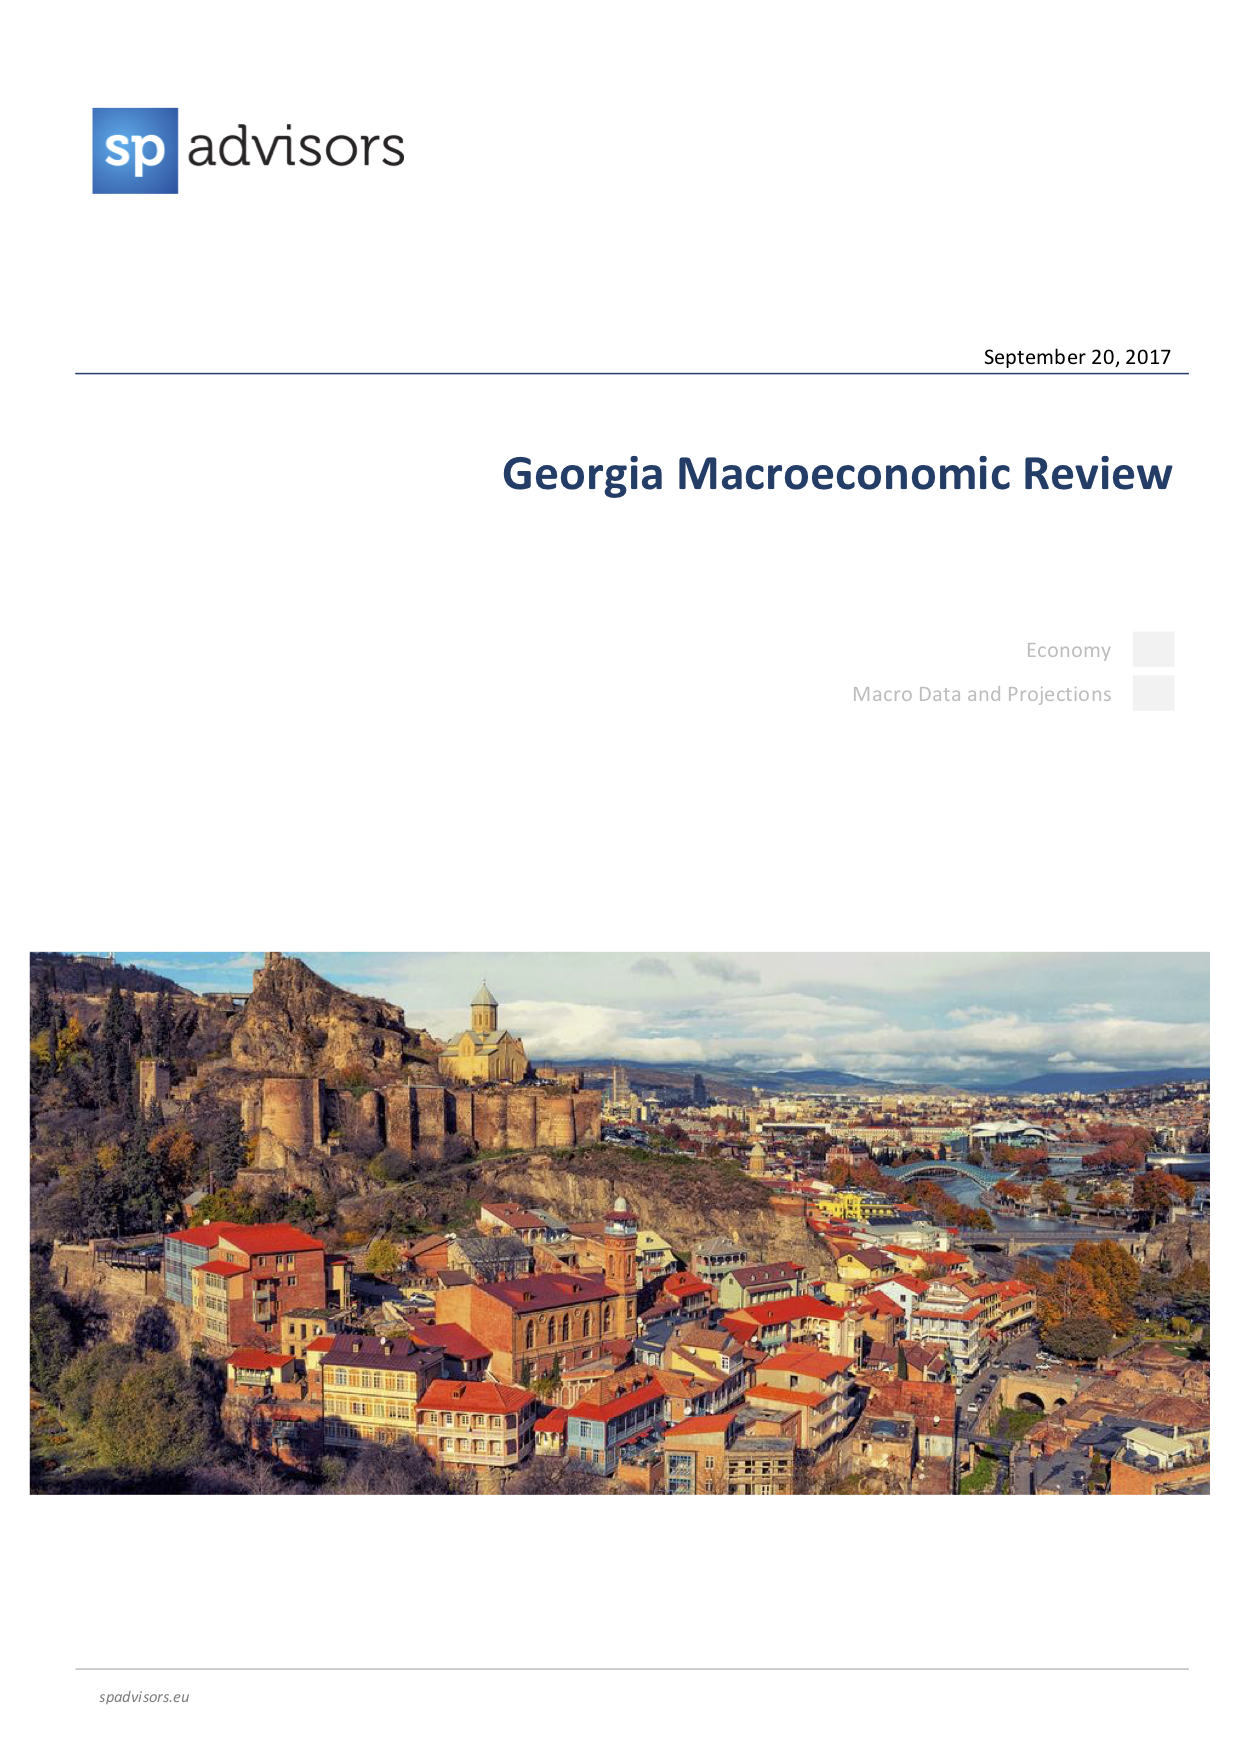 Georgia Macroeconomic Review. September 20, 2017